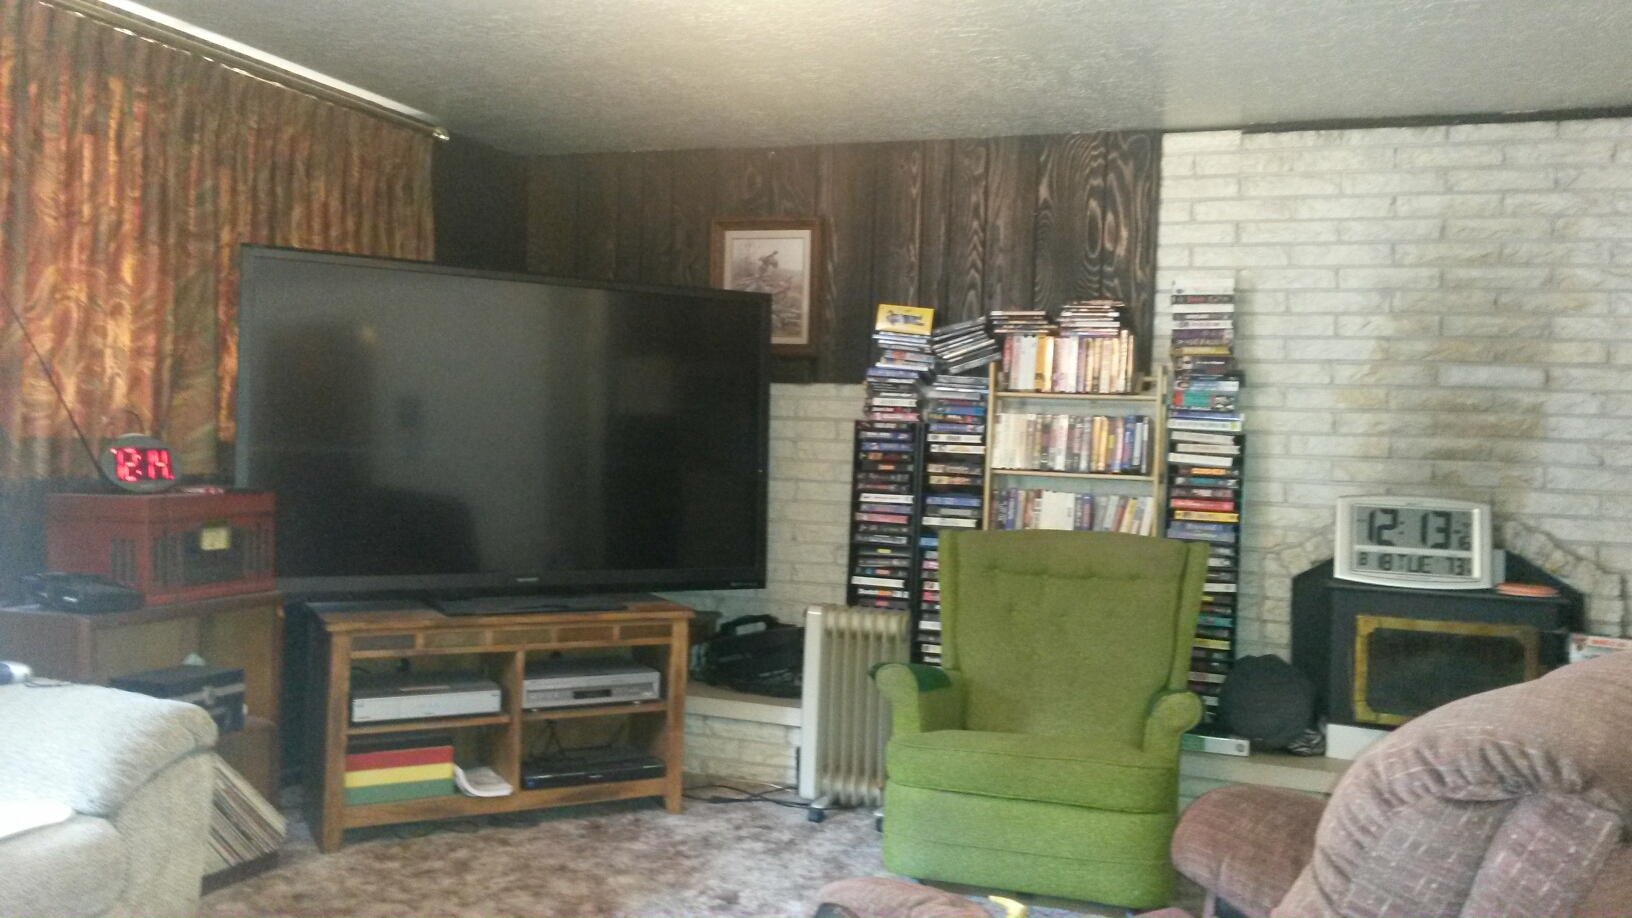 Kaysville, UT - This is the man cave/ family room for this bachelor and senior citizen.  He was concerned about mold. The good news is we did not find any mold or evidence of mold.